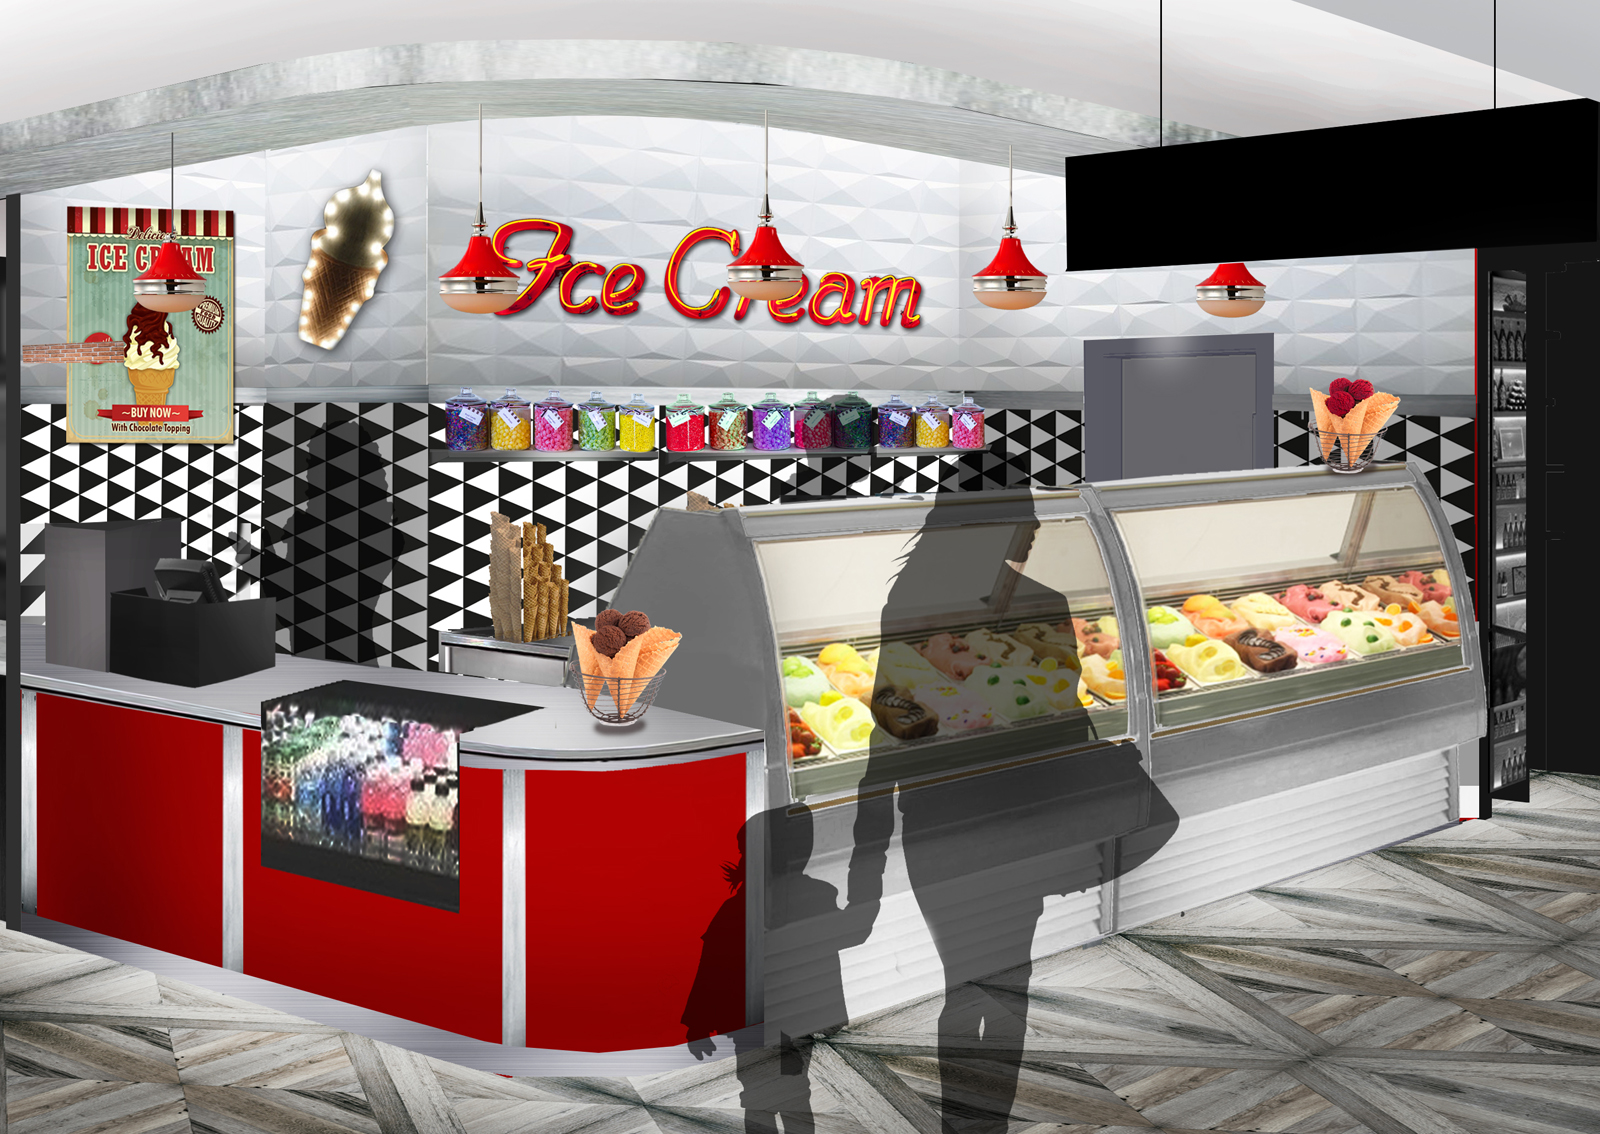 This artist's rendering shows what the 50s-style ice cream food stall will look like inside the under construction MGM National Harbor Casino and Resort in Prince George's County. The $1.3 billion resort is set to open later this year and will feature a food market with 10 different vendors including S'Cream. (Courtesy MGM National Harbor Casino and Resort)